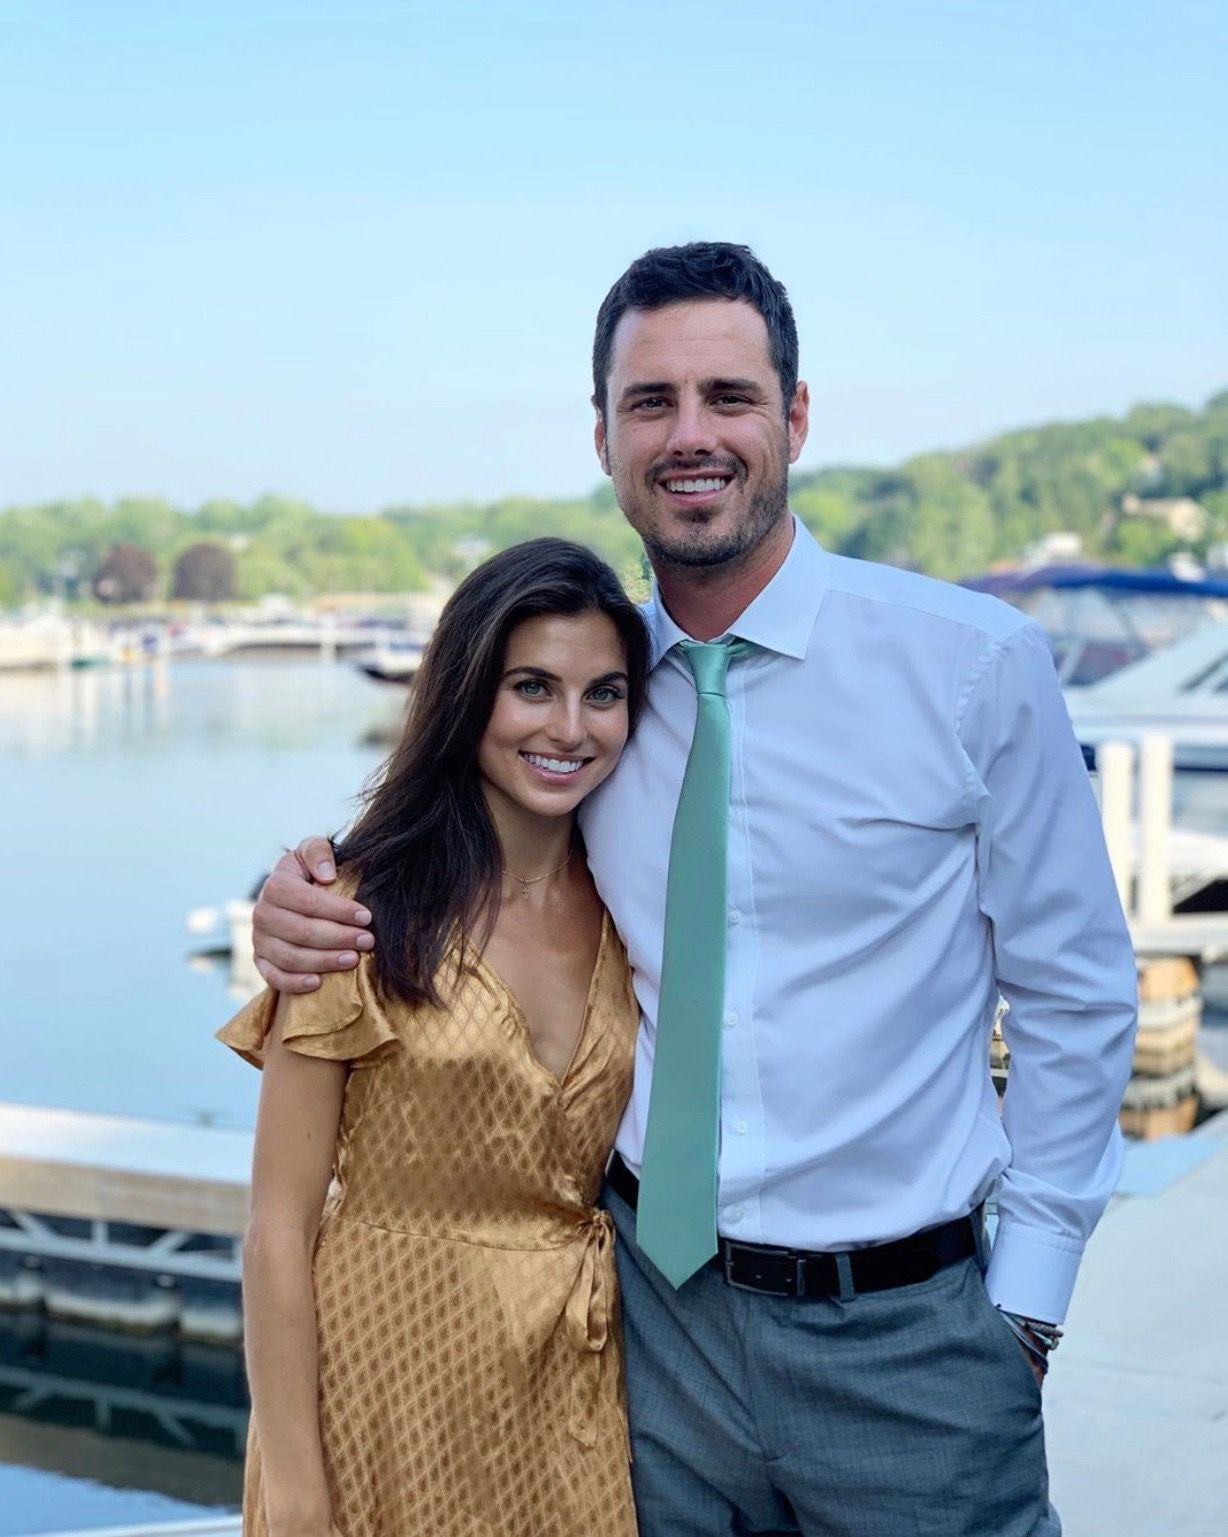 Bachelor' Alum Ben Higgins Engaged to Girlfriend Jessica Clarke